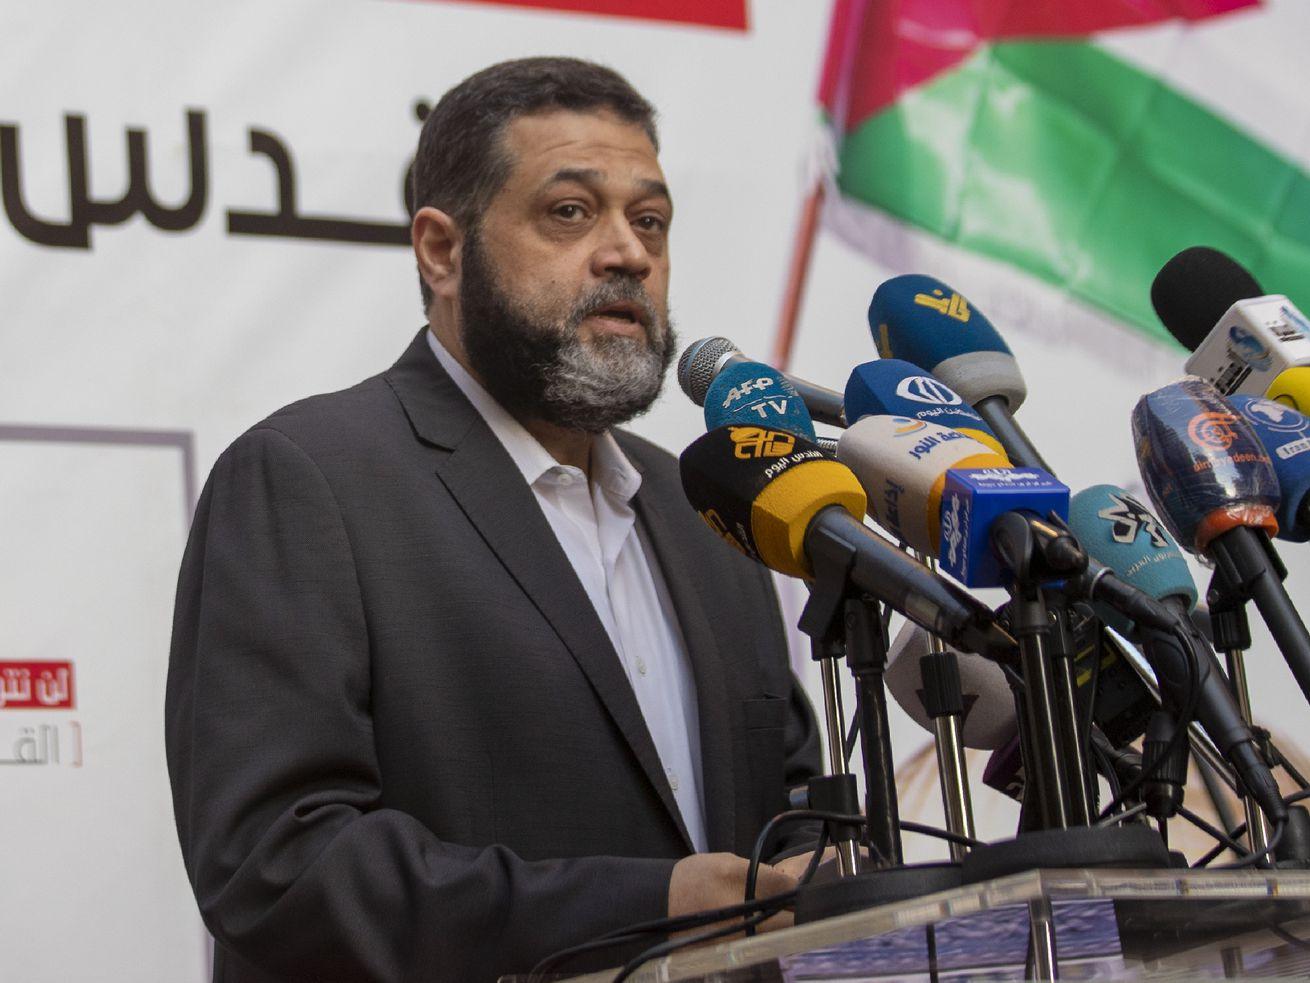 Senior Hamas official Osama Hamdan speaks during a rally organized by Lebanon's militant Hezbollah group to express solidarity with the Palestinian people, in the southern suburb of Beirut, Lebanon, Monday, May 17, 2021.